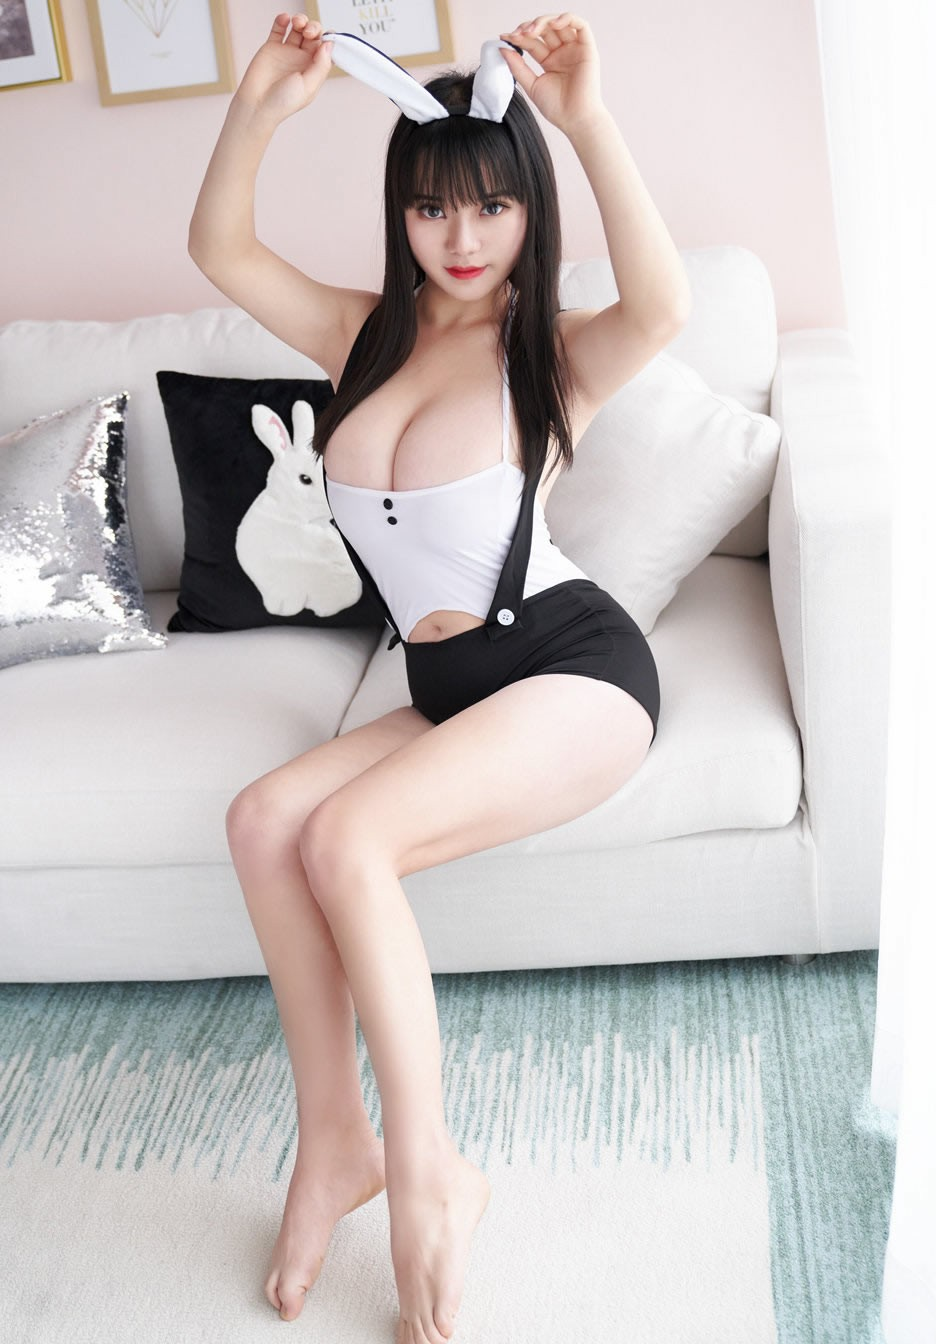 💋💋💋 ASIAN NEW HOT 💟💟💋💟💟 404-531-2310  Outcall Only 💟💟💋 NEW ARRIVED